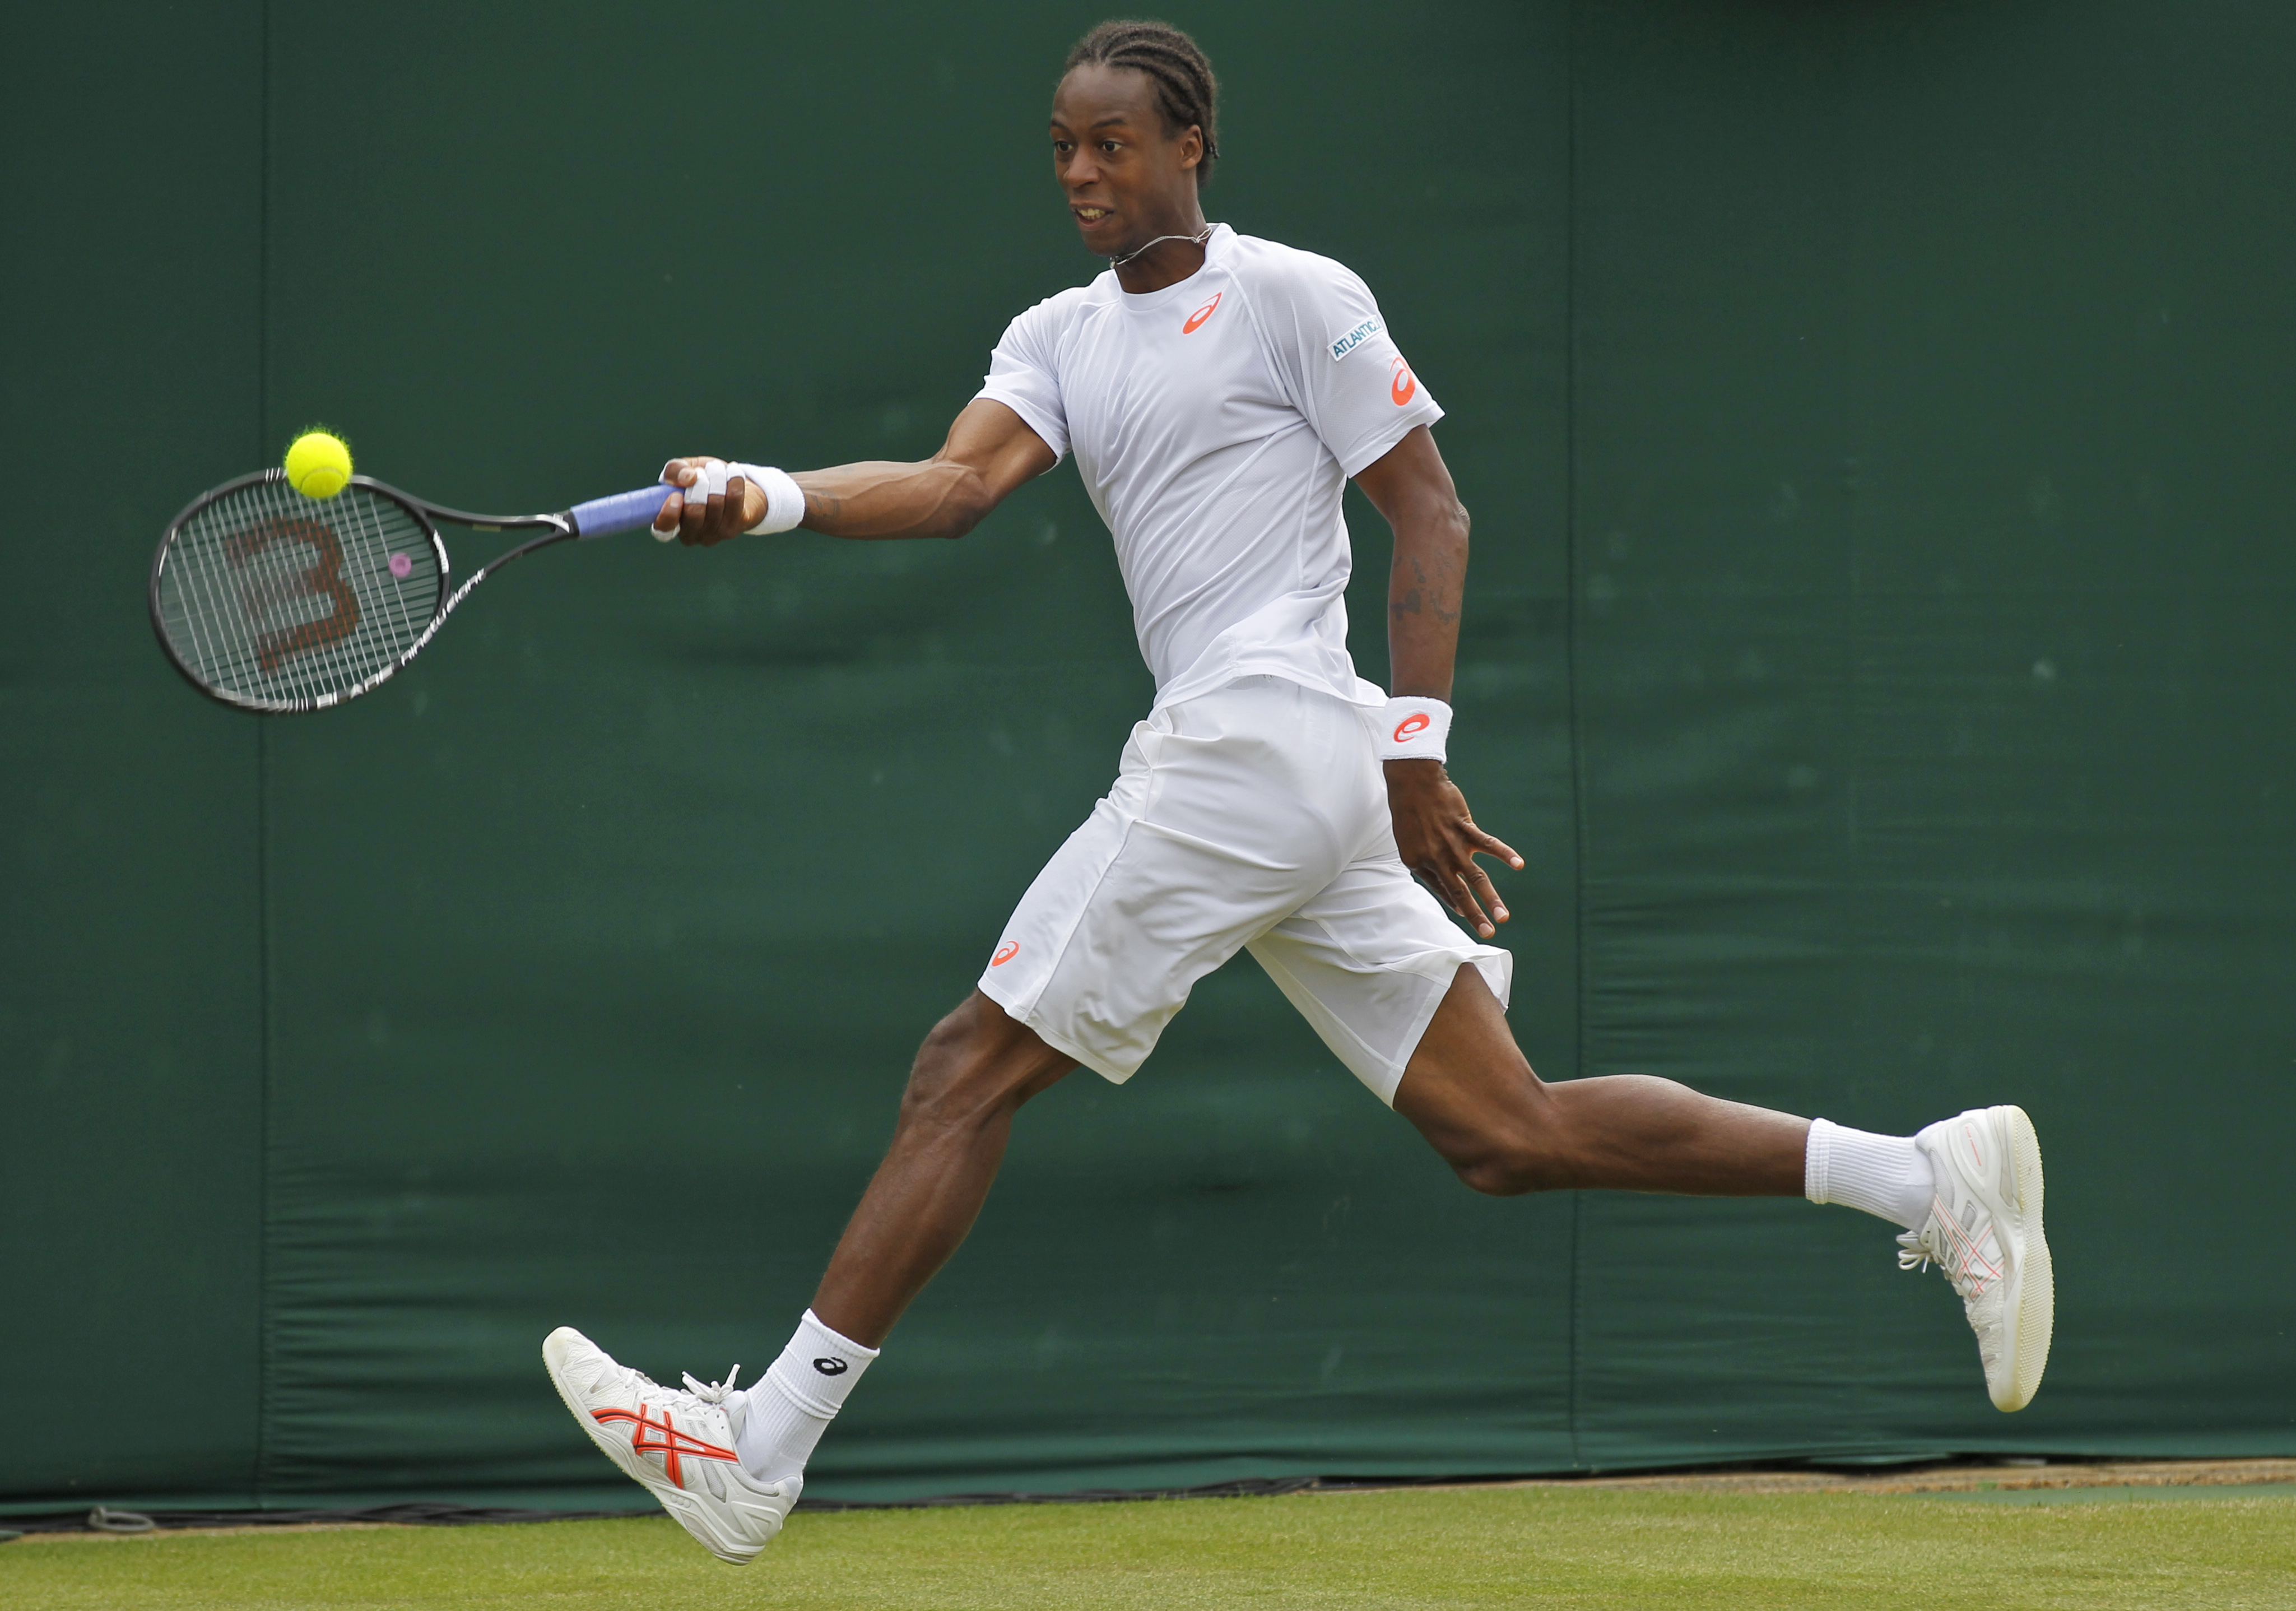 Gael Monfils withdraws from Citi Open tournament